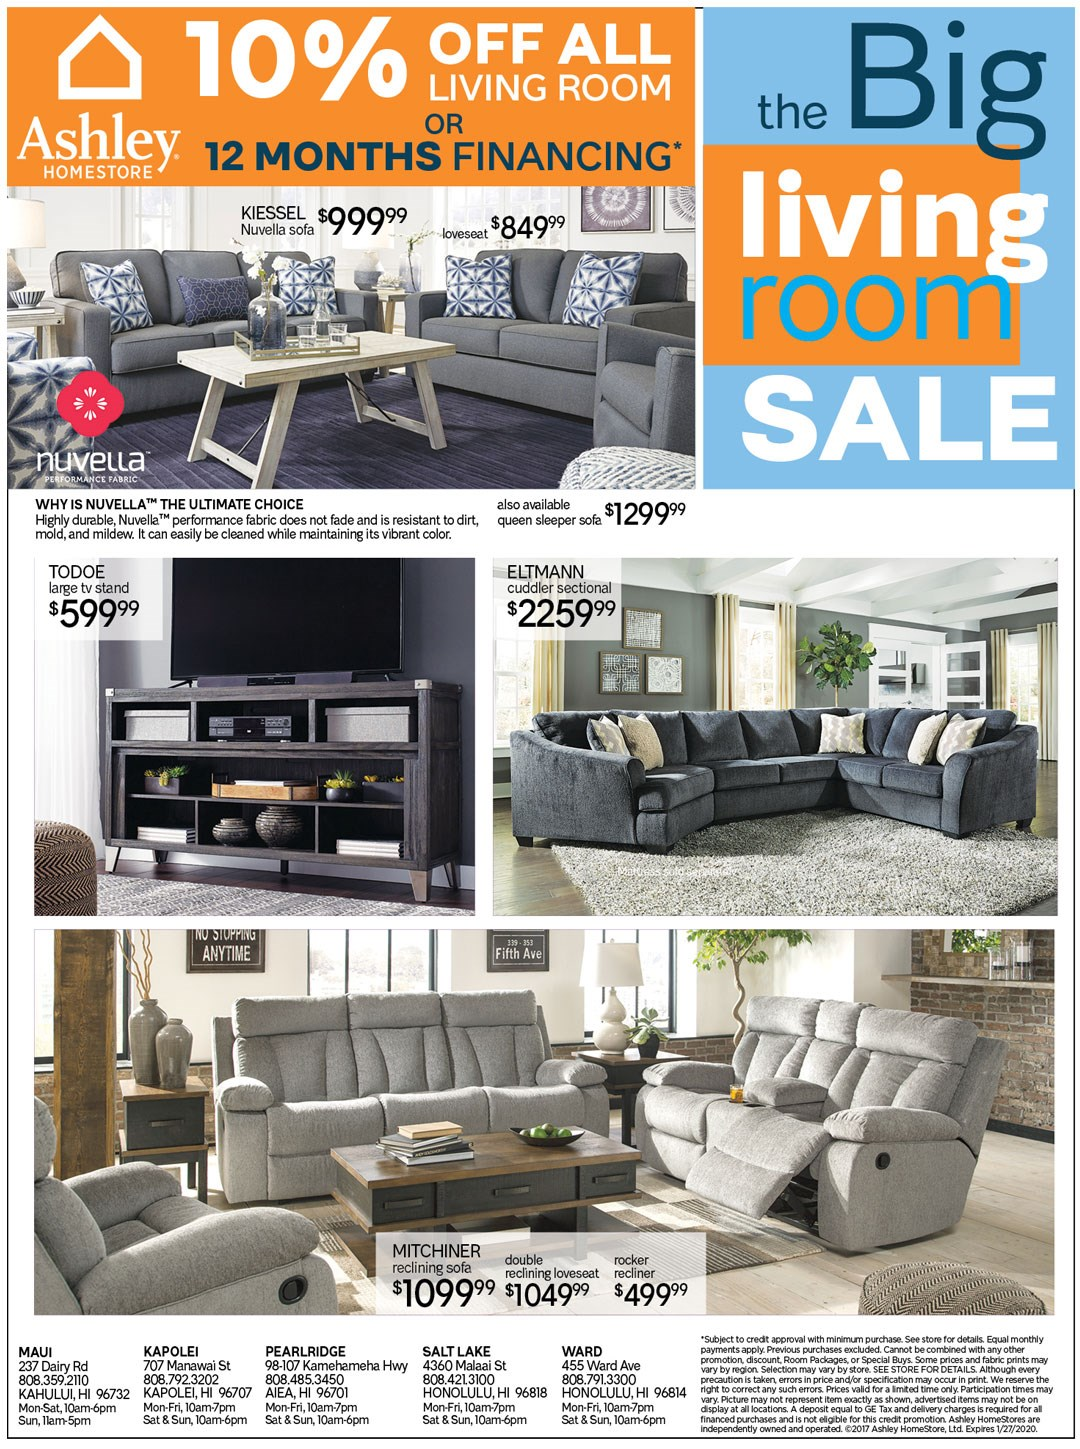 10% off all living room furniture or ask about 12 months financing; see store for details